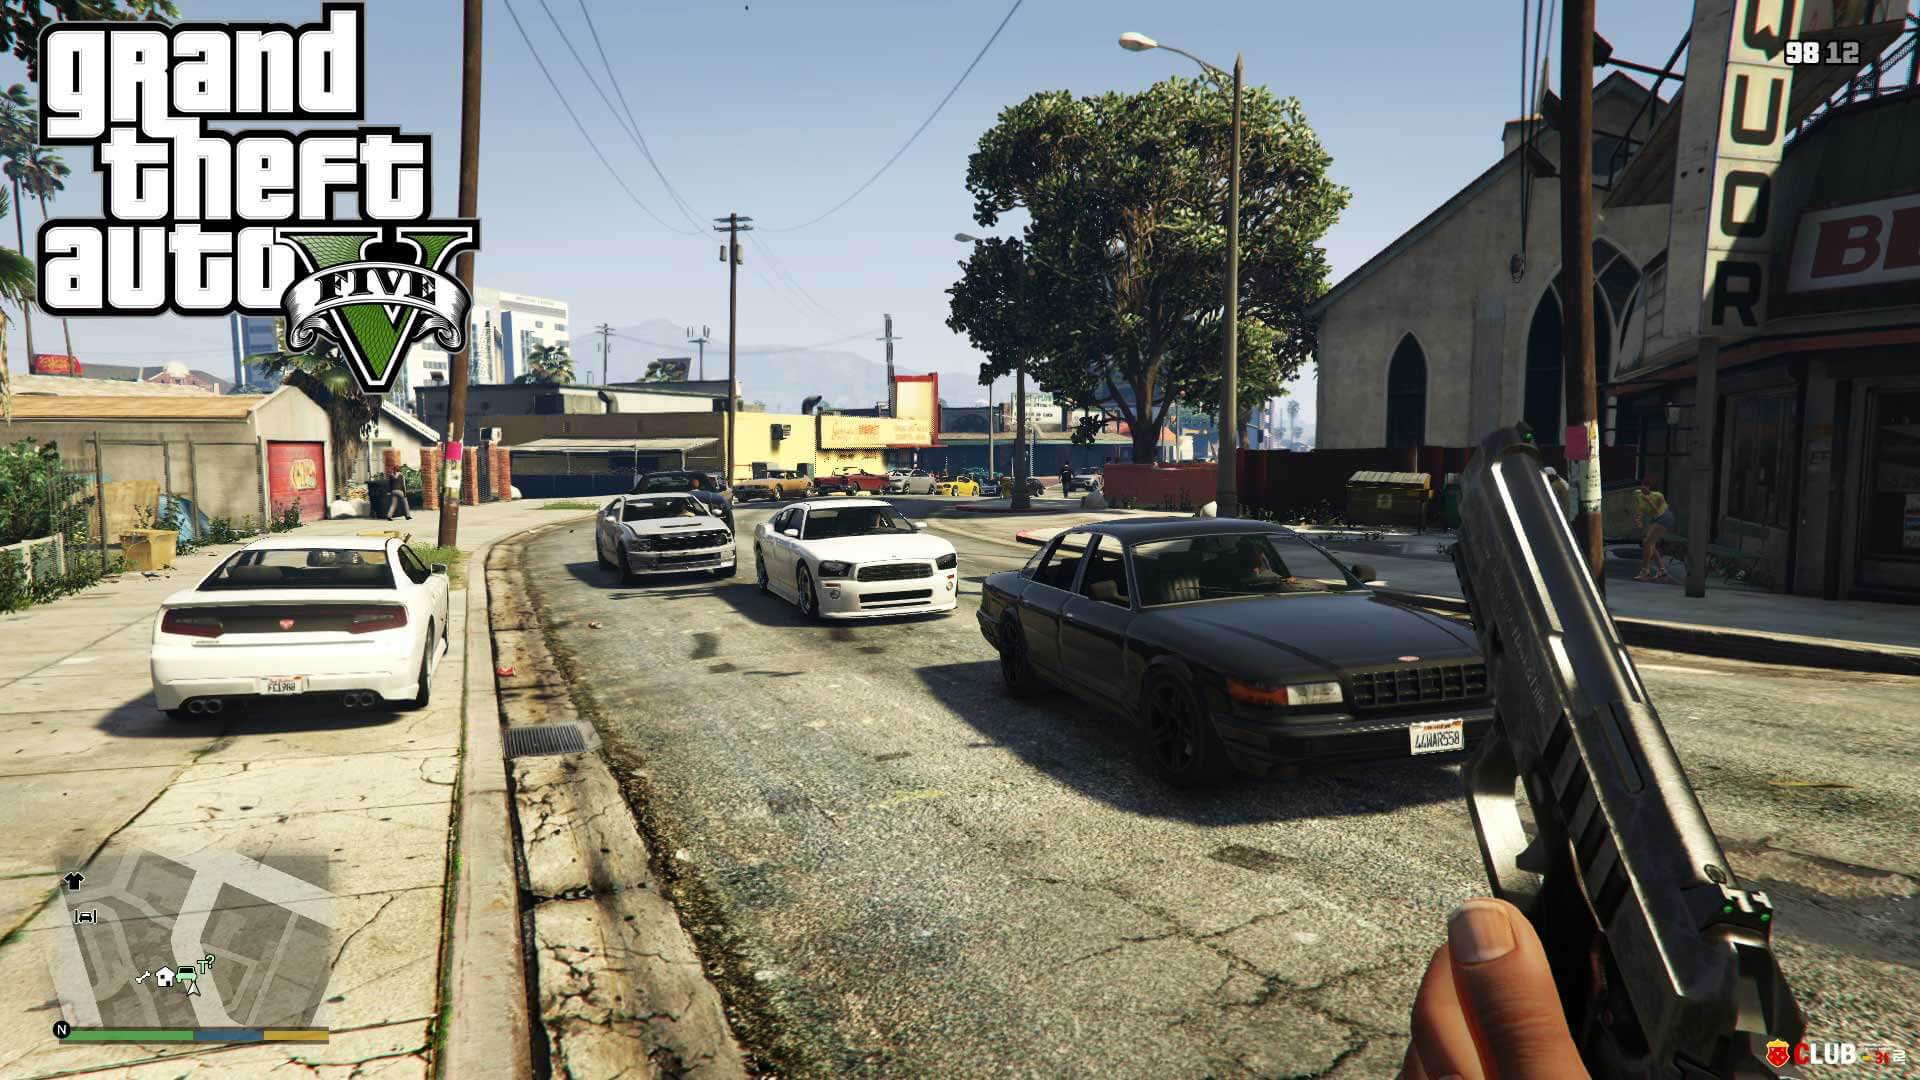 gta 5 free download pc unblocked